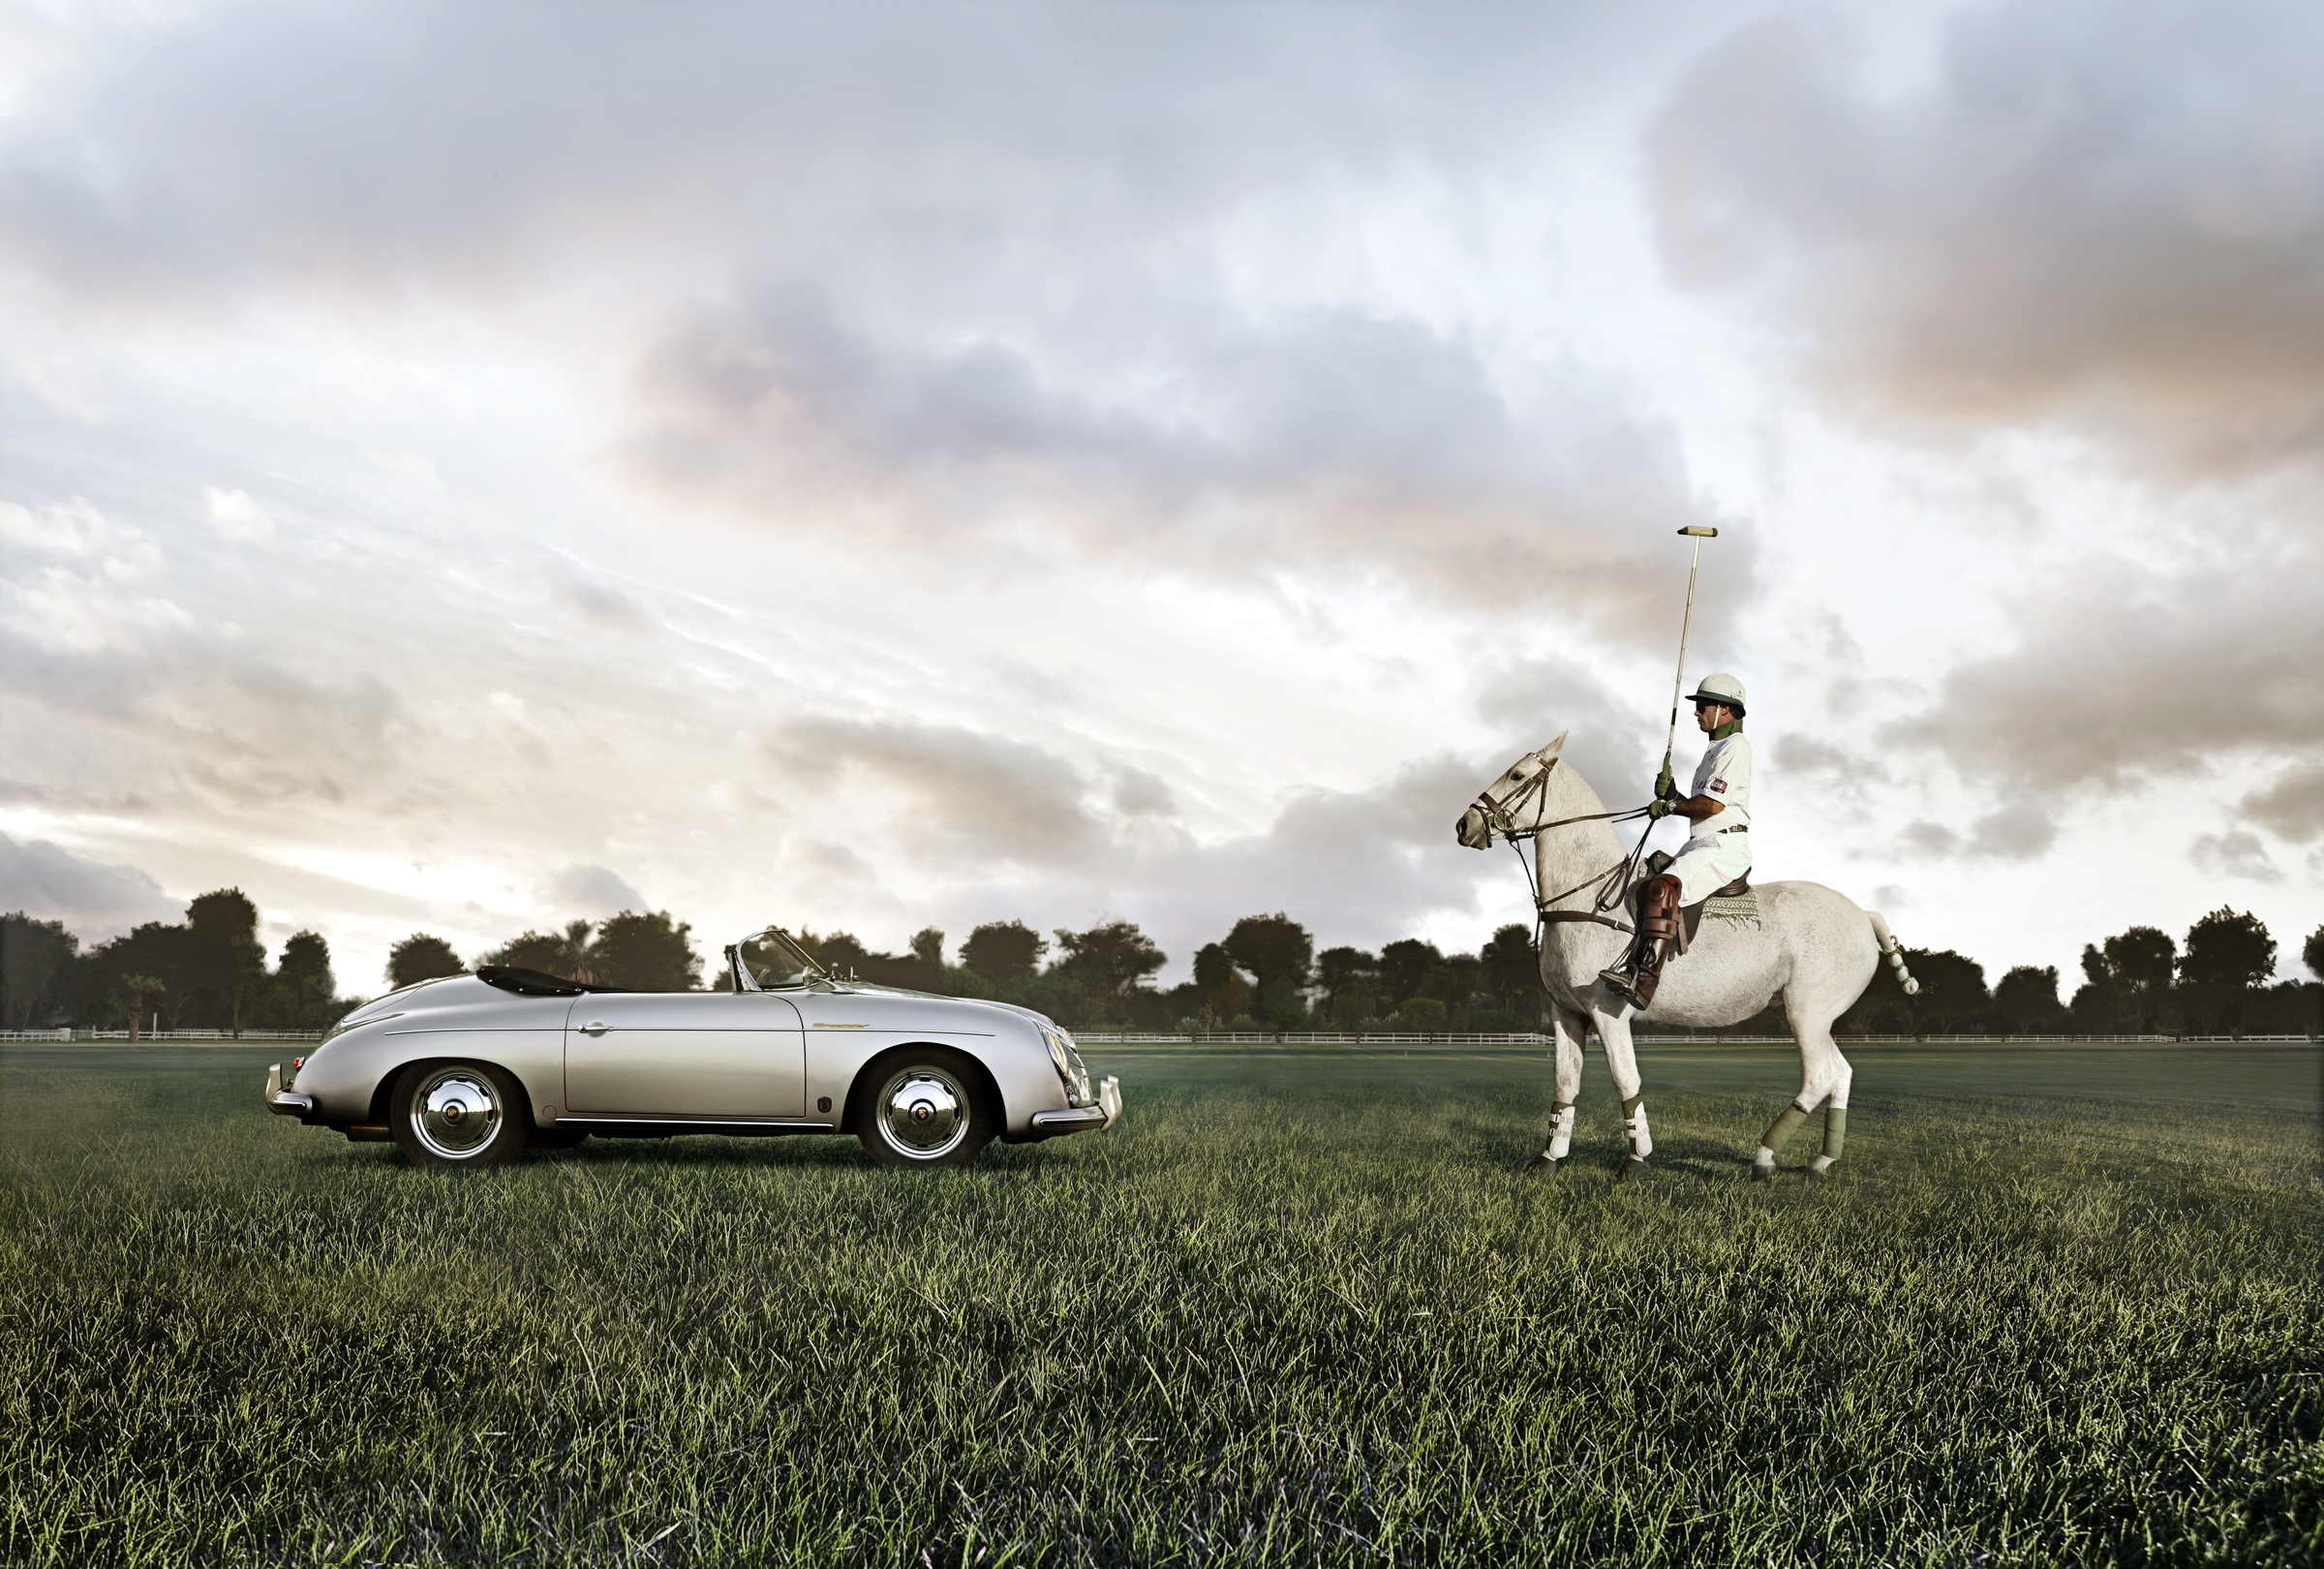 Polo player facing sports car on polo field.